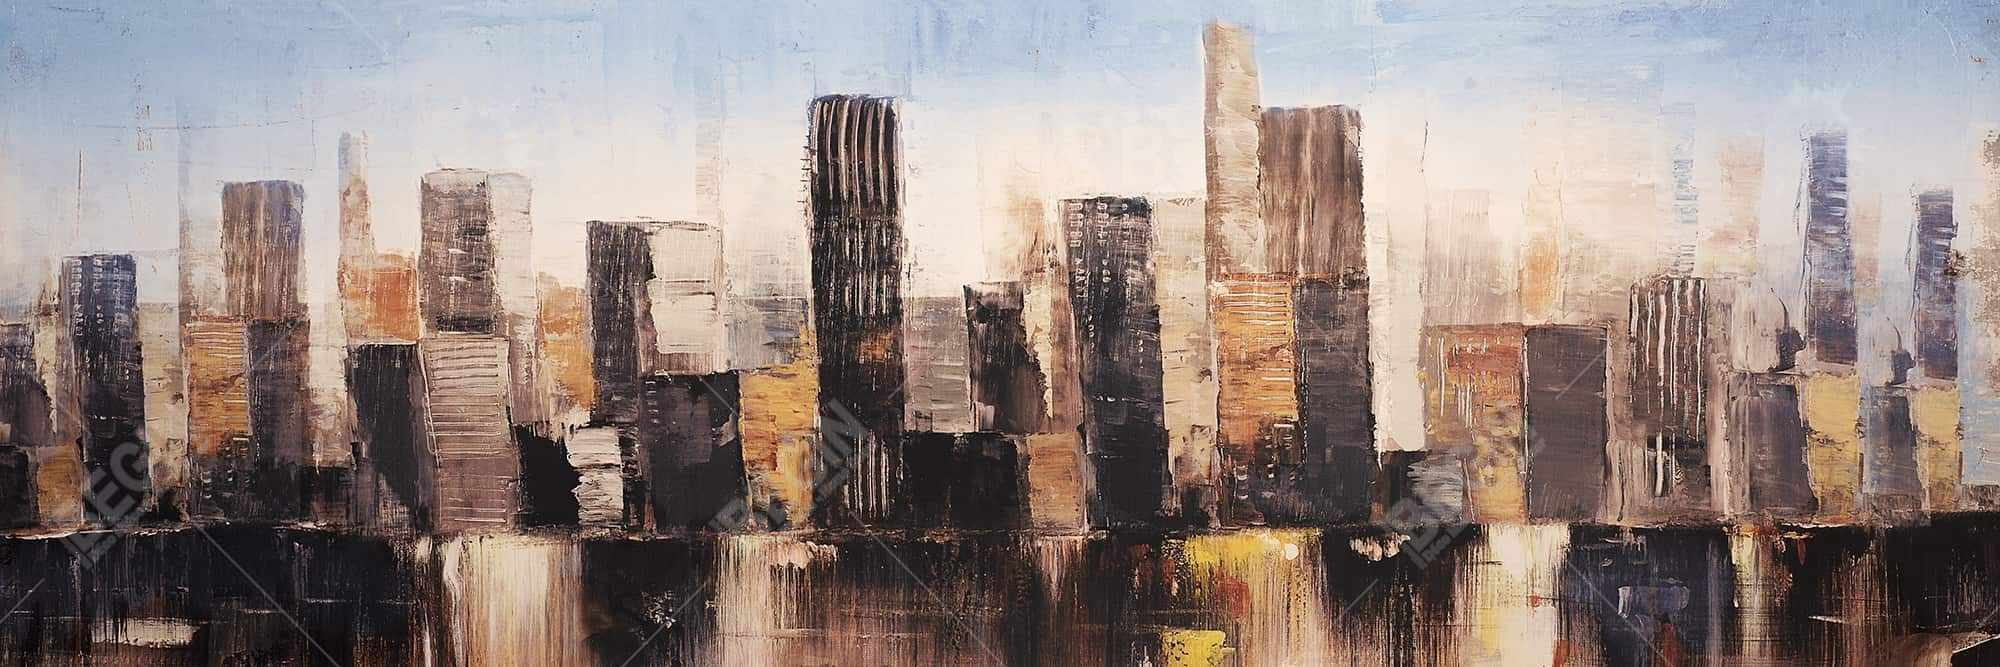 Striped abstract buildings